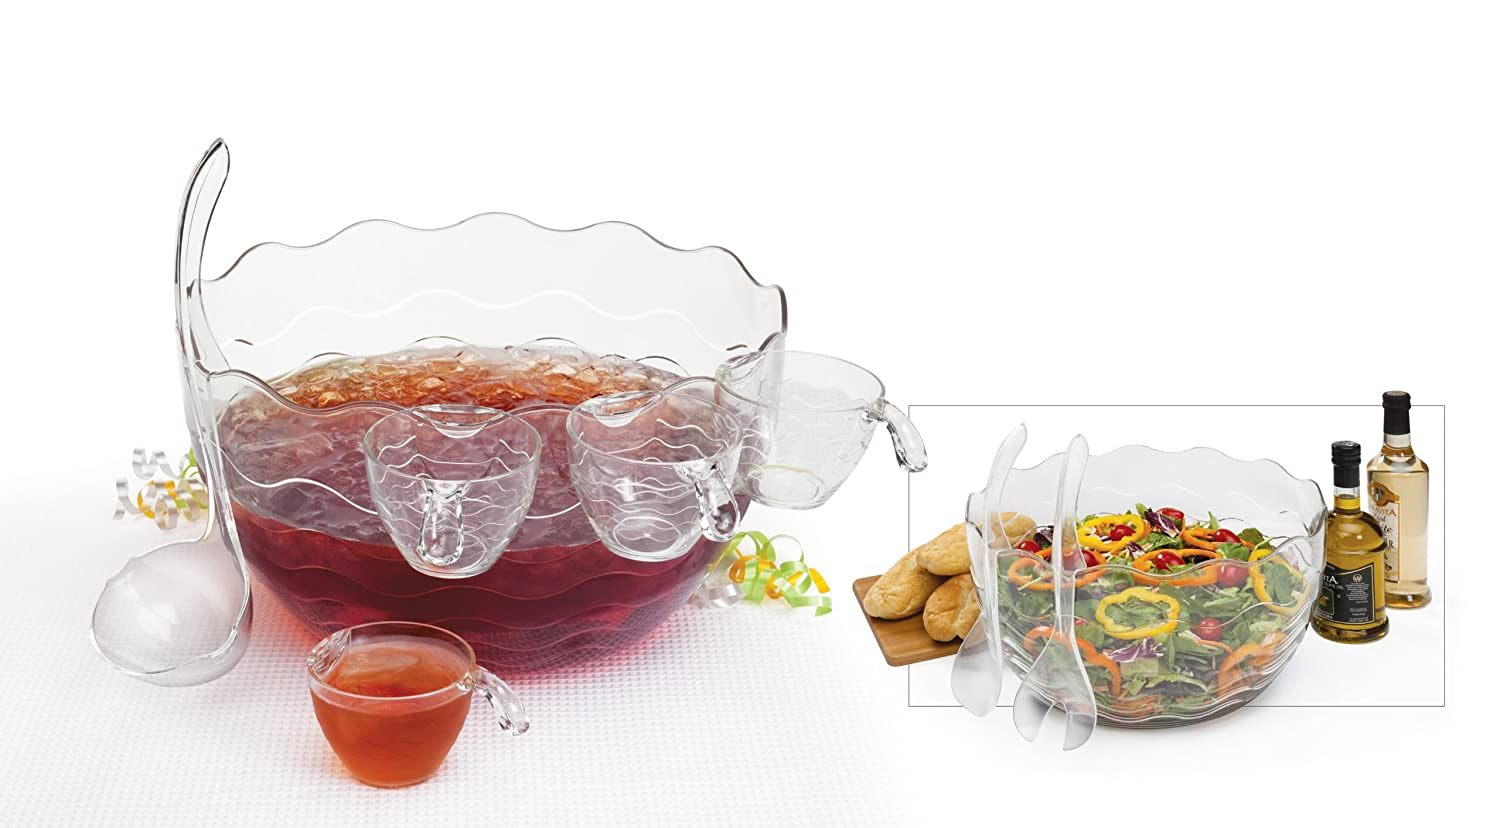 Creative Bath Punch/Salad Bowl, 16-Piece Set PUN-16CLR